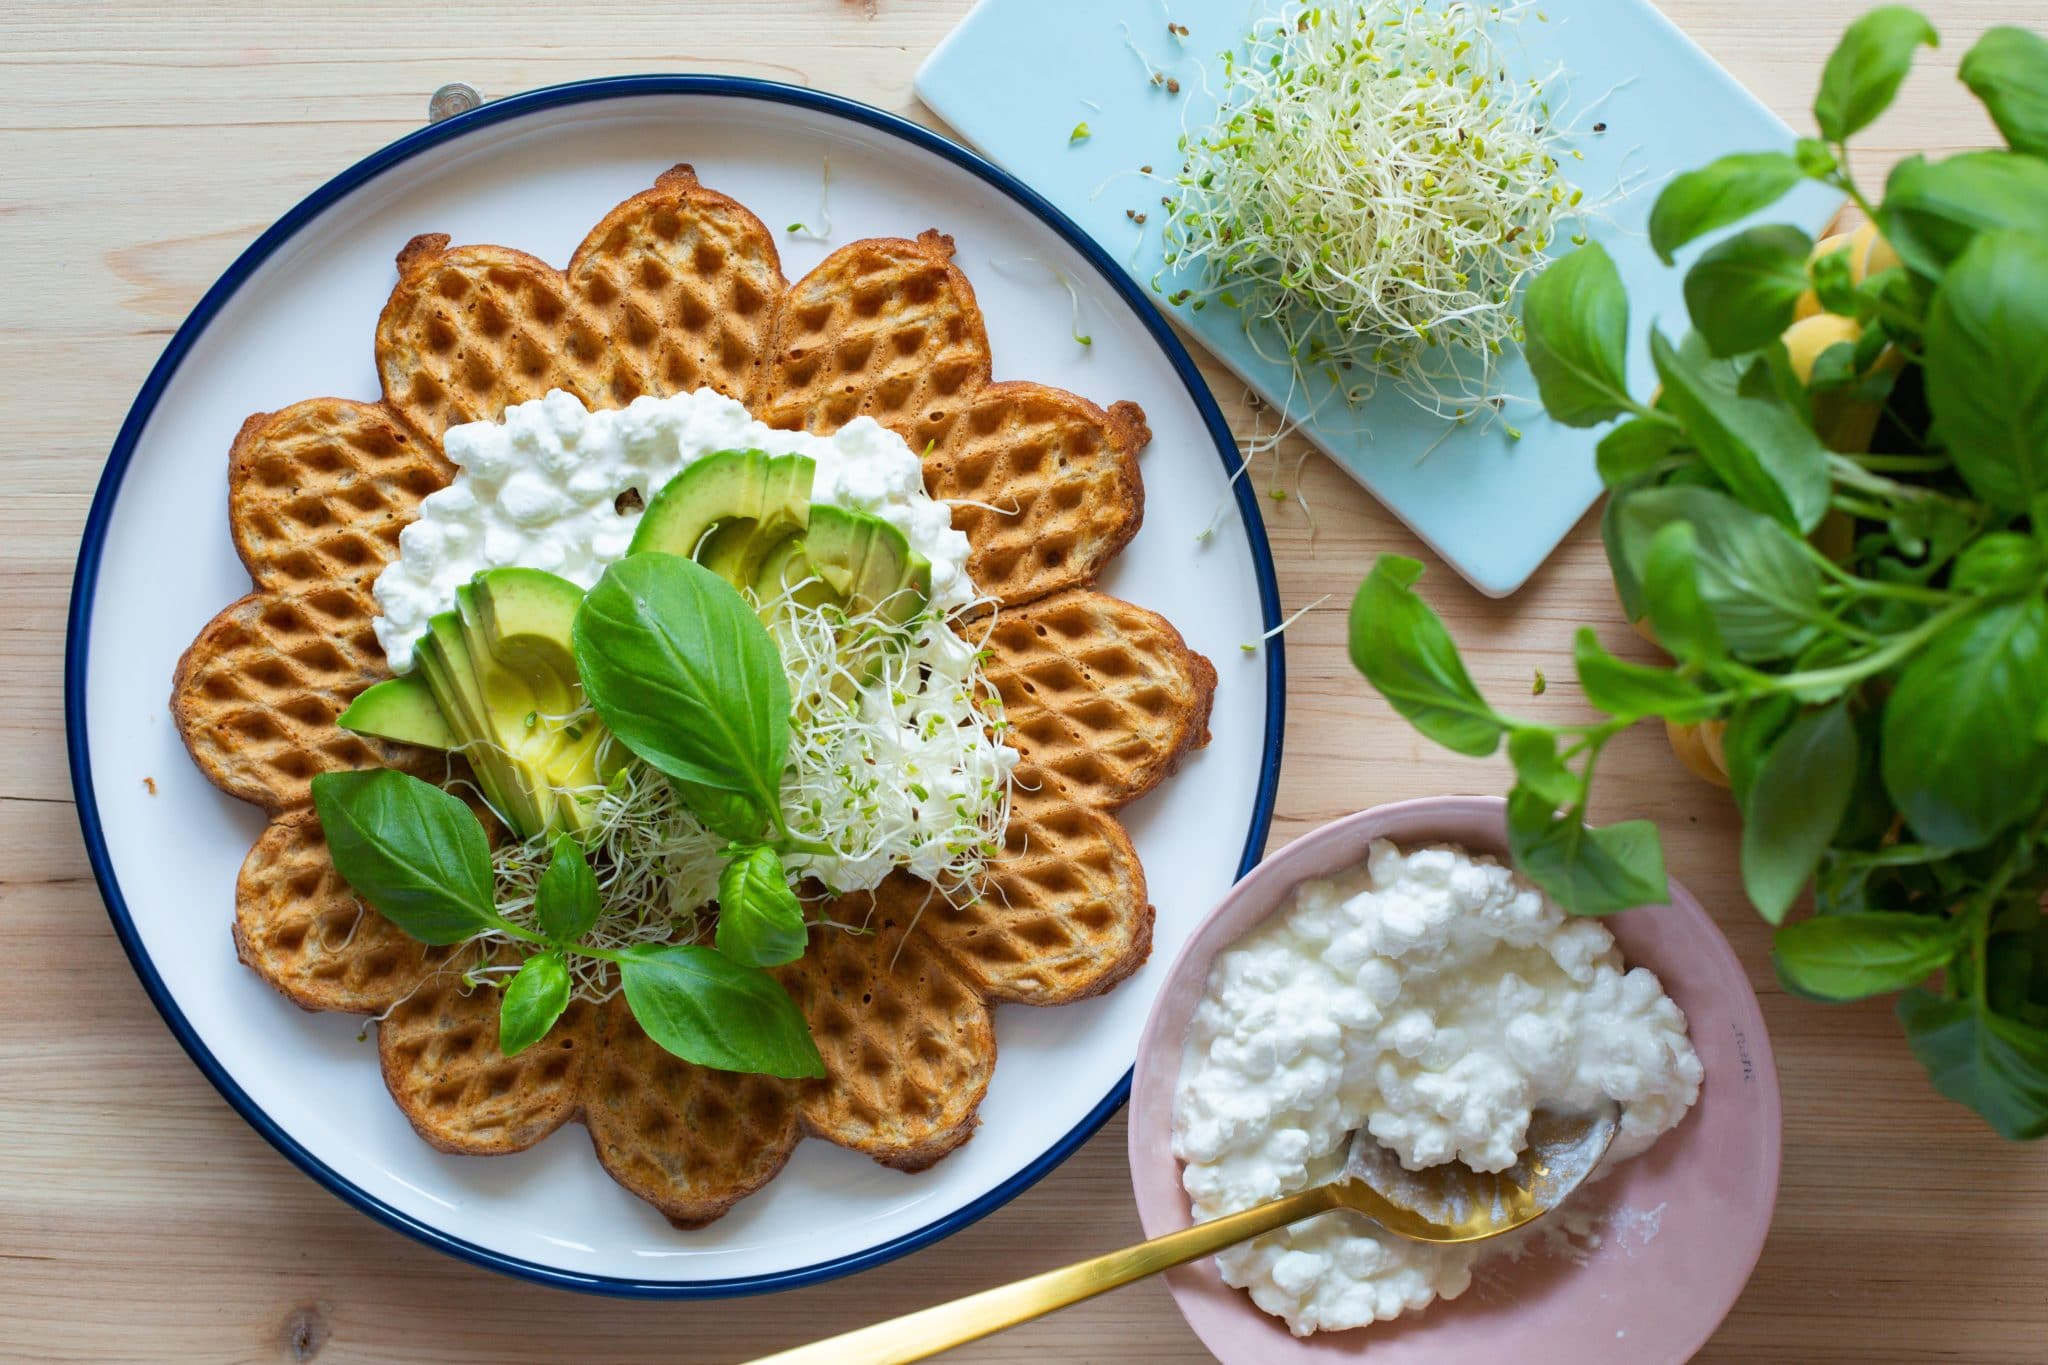 Grove lunsjvafler med avocado og cottage cheese